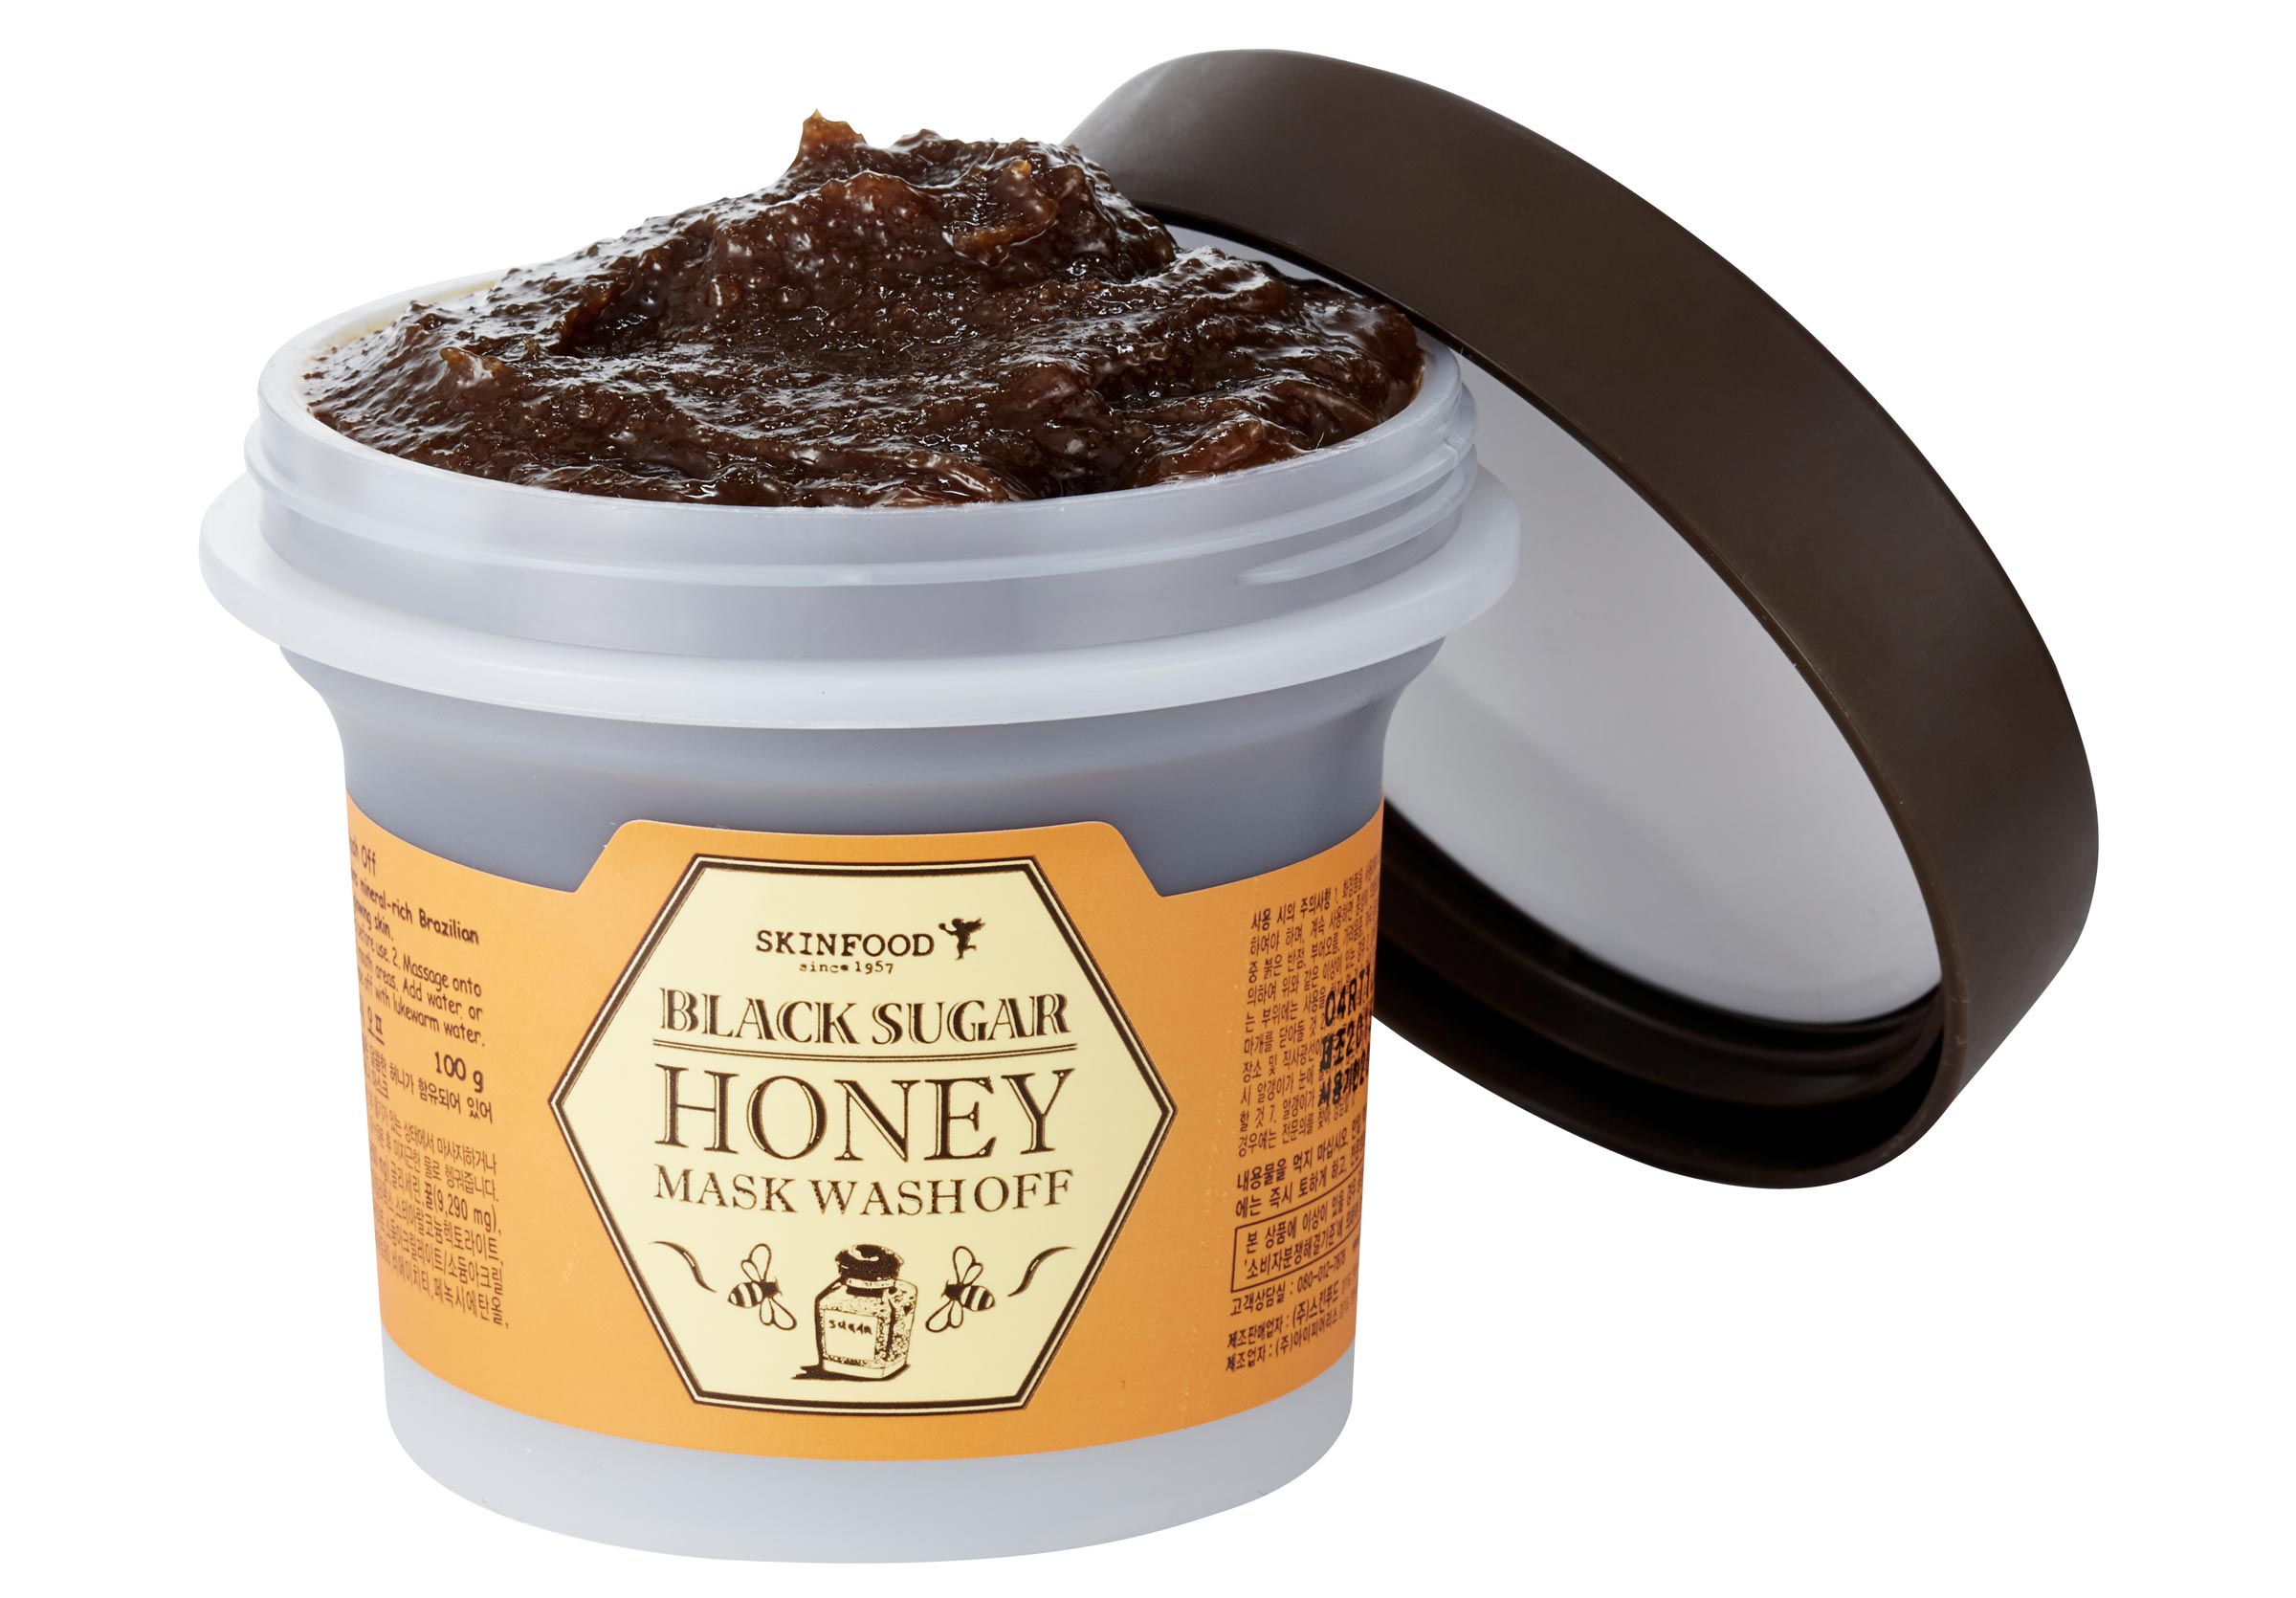 SKINFOOD Maschera Viso Black Sugar Honey Mask Wash Off